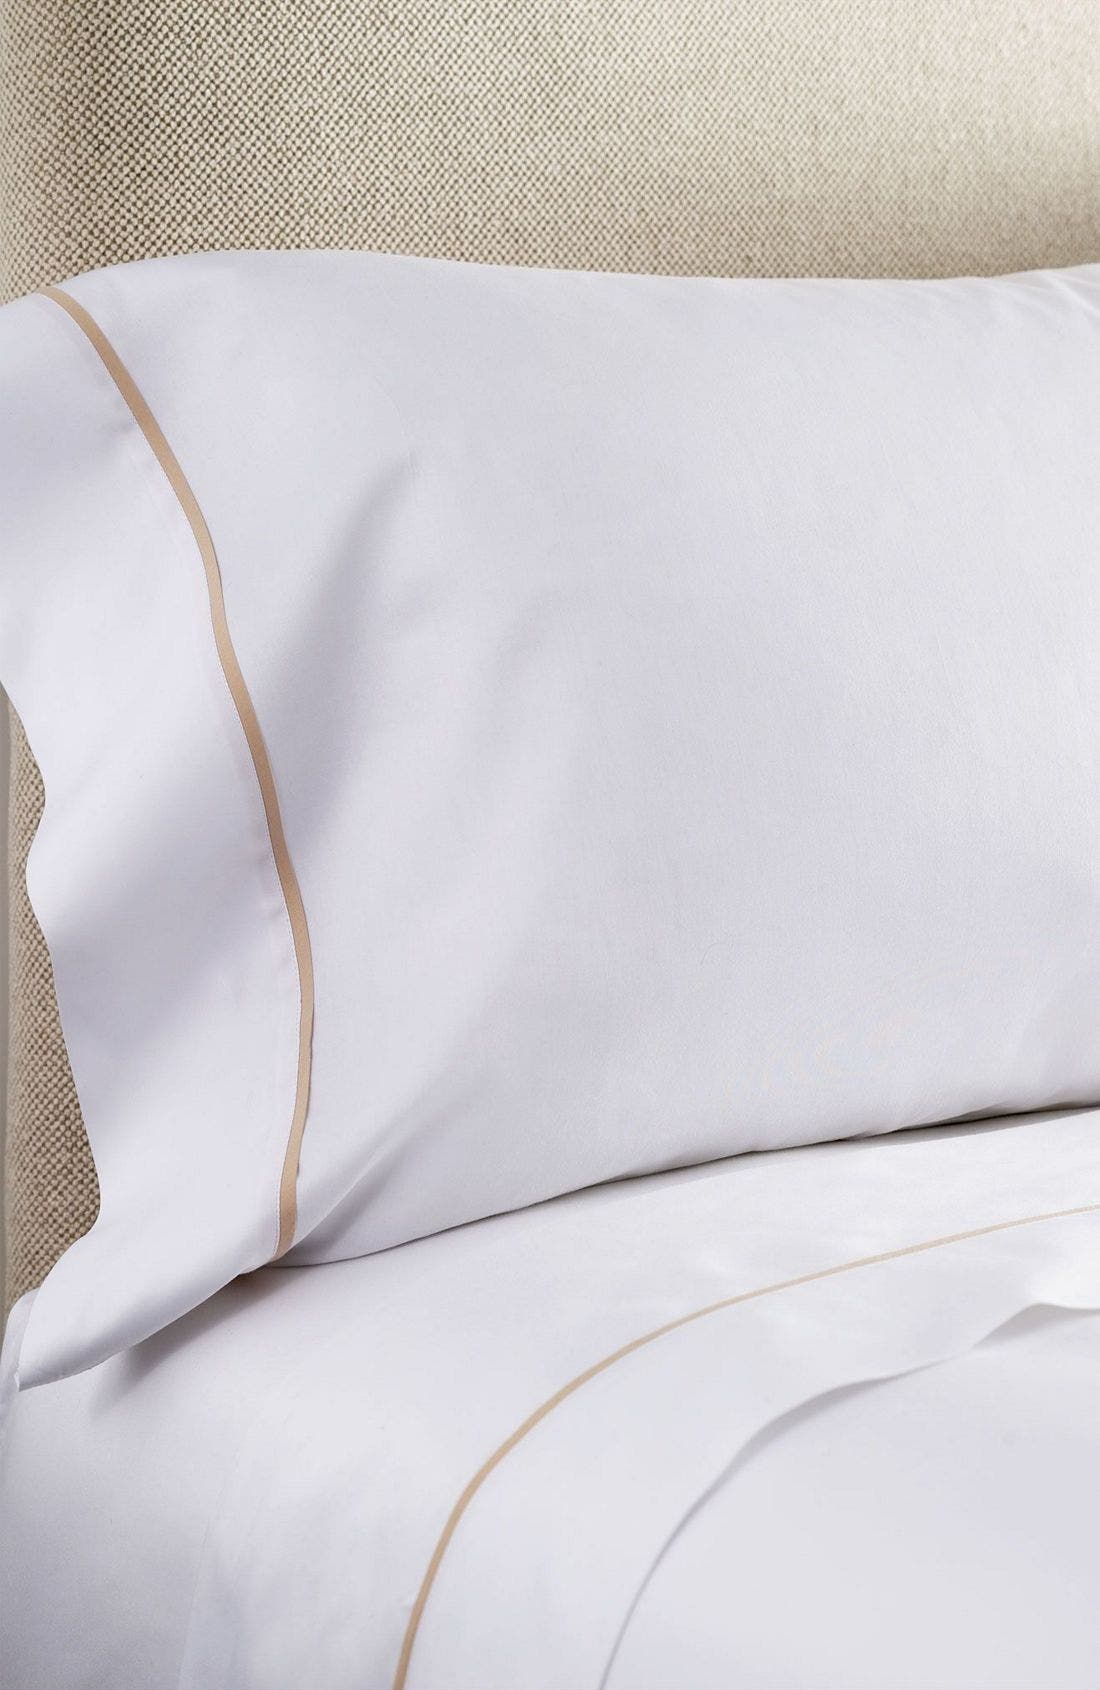 Westin Heavenly Bed<sup>®</sup> 300 Thread Count Egyptian Cotton Luxe Pillowcase,                         Main,                         color, WHI